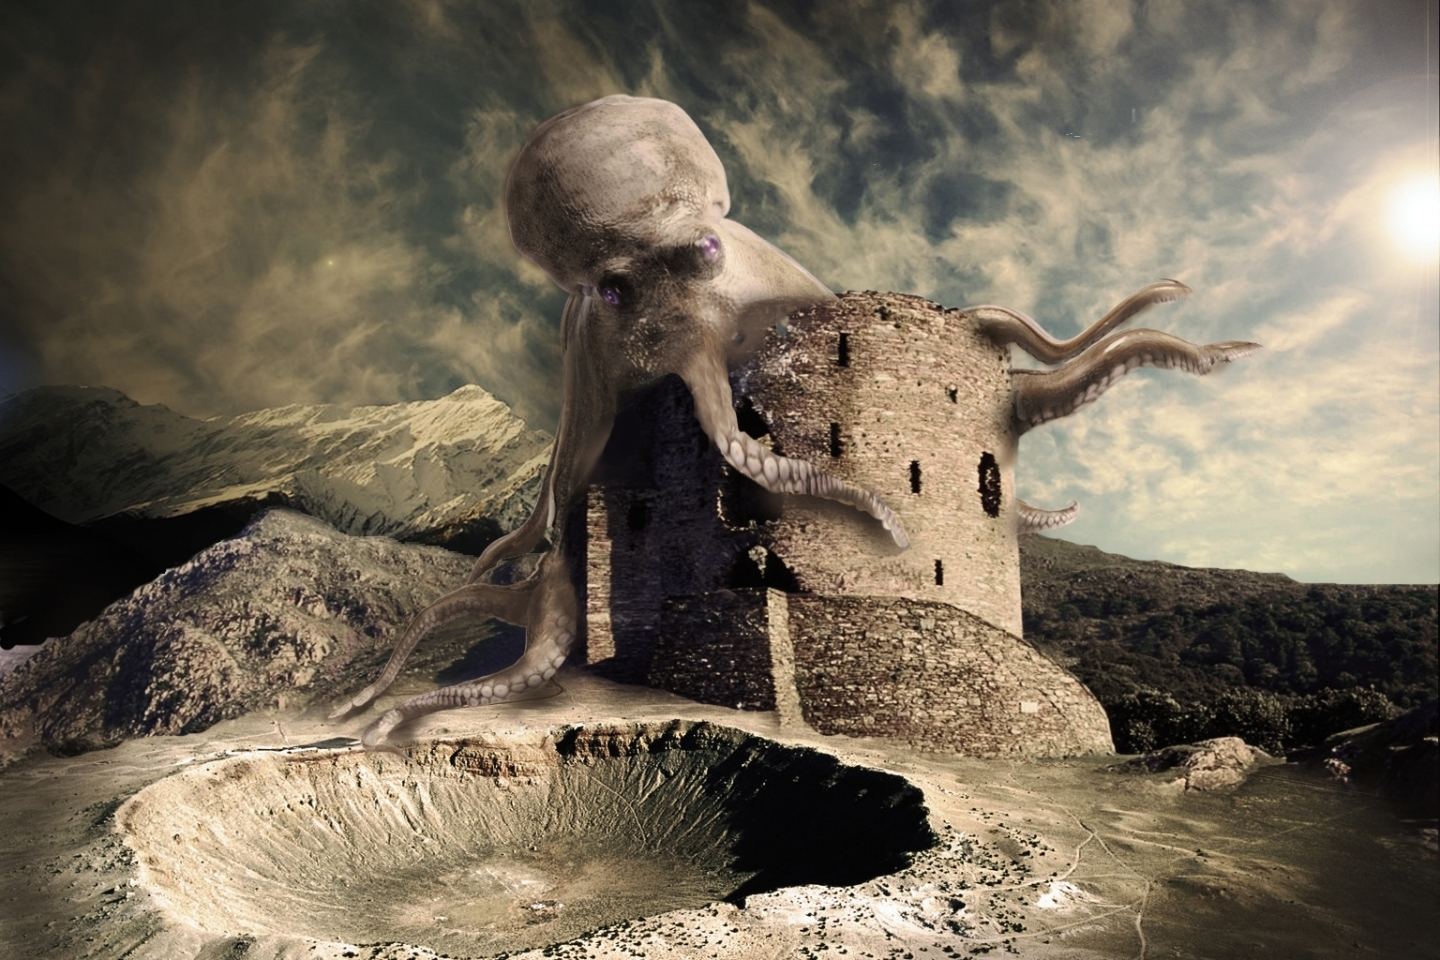 29001 download wallpaper Fantasy, Octopus screensavers and pictures for free